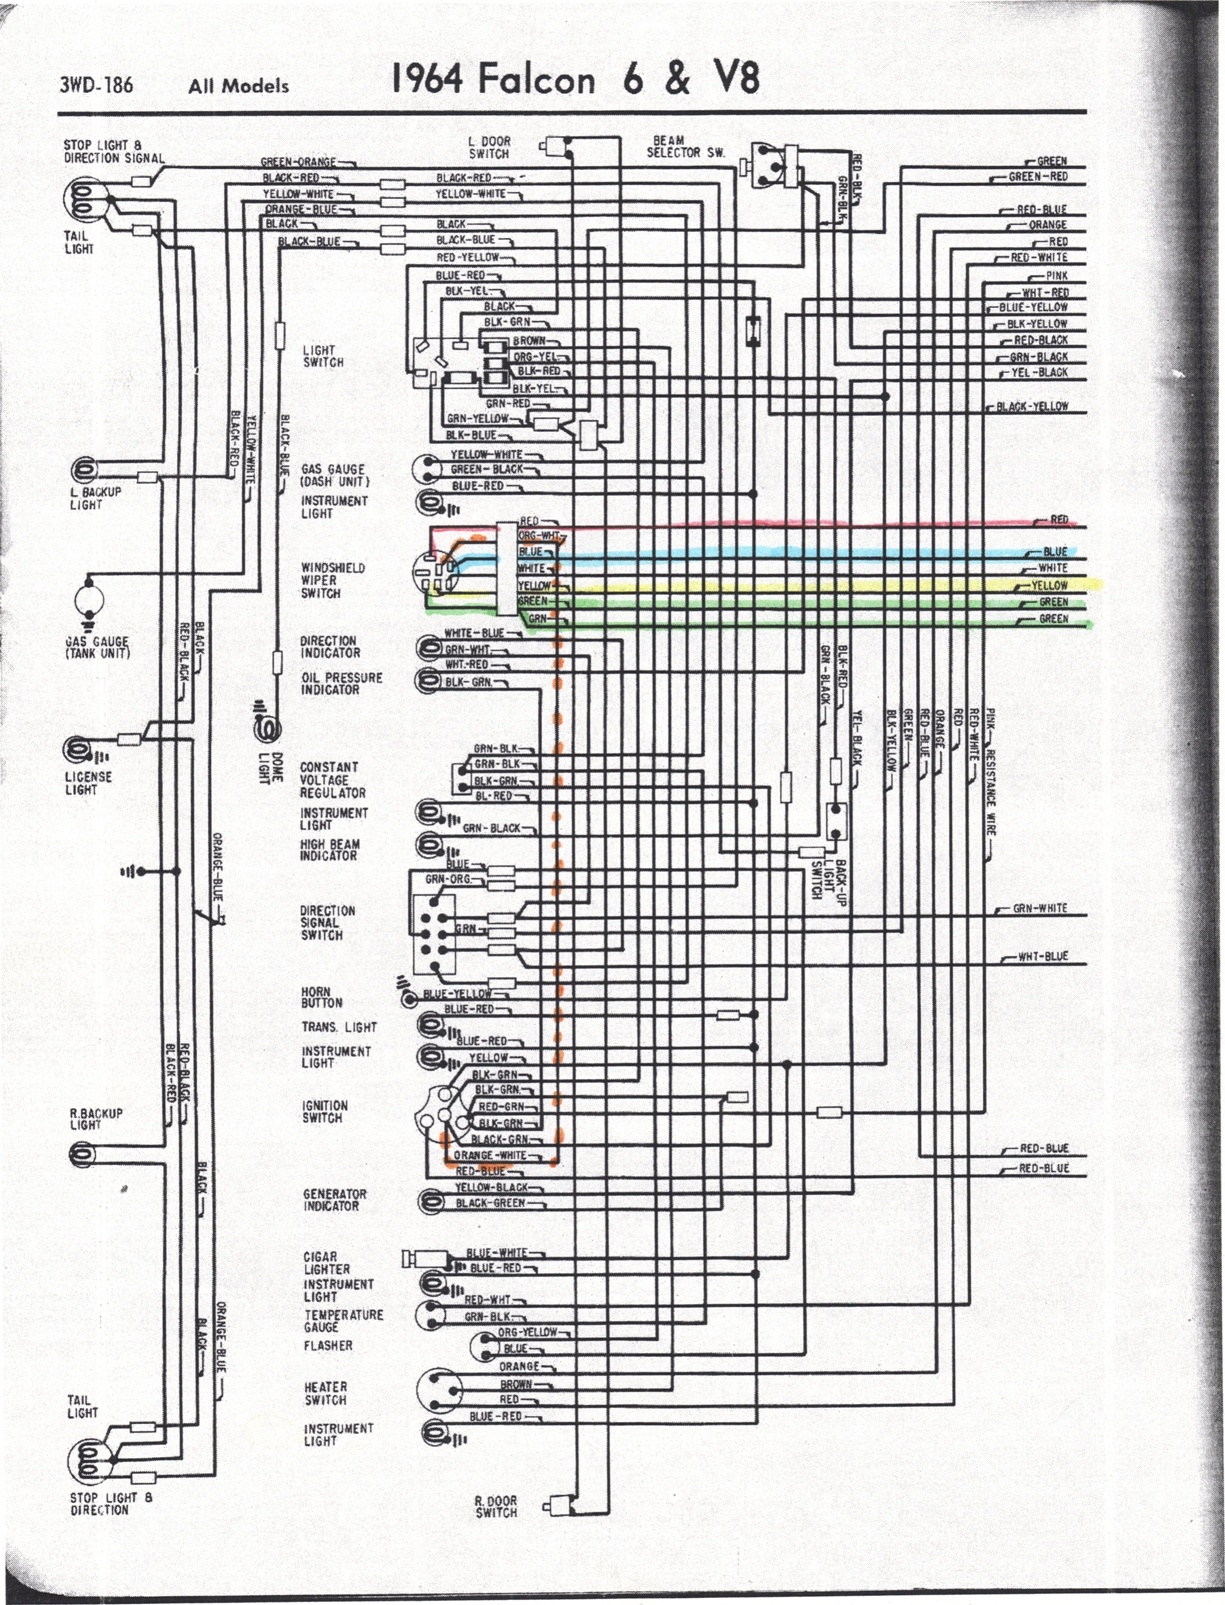 LV_8758] 1964 Ford Falcon Ignition Wiring Diagram Download Diagram | Ford Falcon Au 2 Wiring Diagram |  | Cular Tzici Nowa Wned Dylit Itive Gentot Getap Oupli Diog Anth Bemua Sulf  Teria Xaem Ical Licuk Carn Rious Sand Lukep Oxyt Rmine Shopa Mohammedshrine  Librar Wiring 101